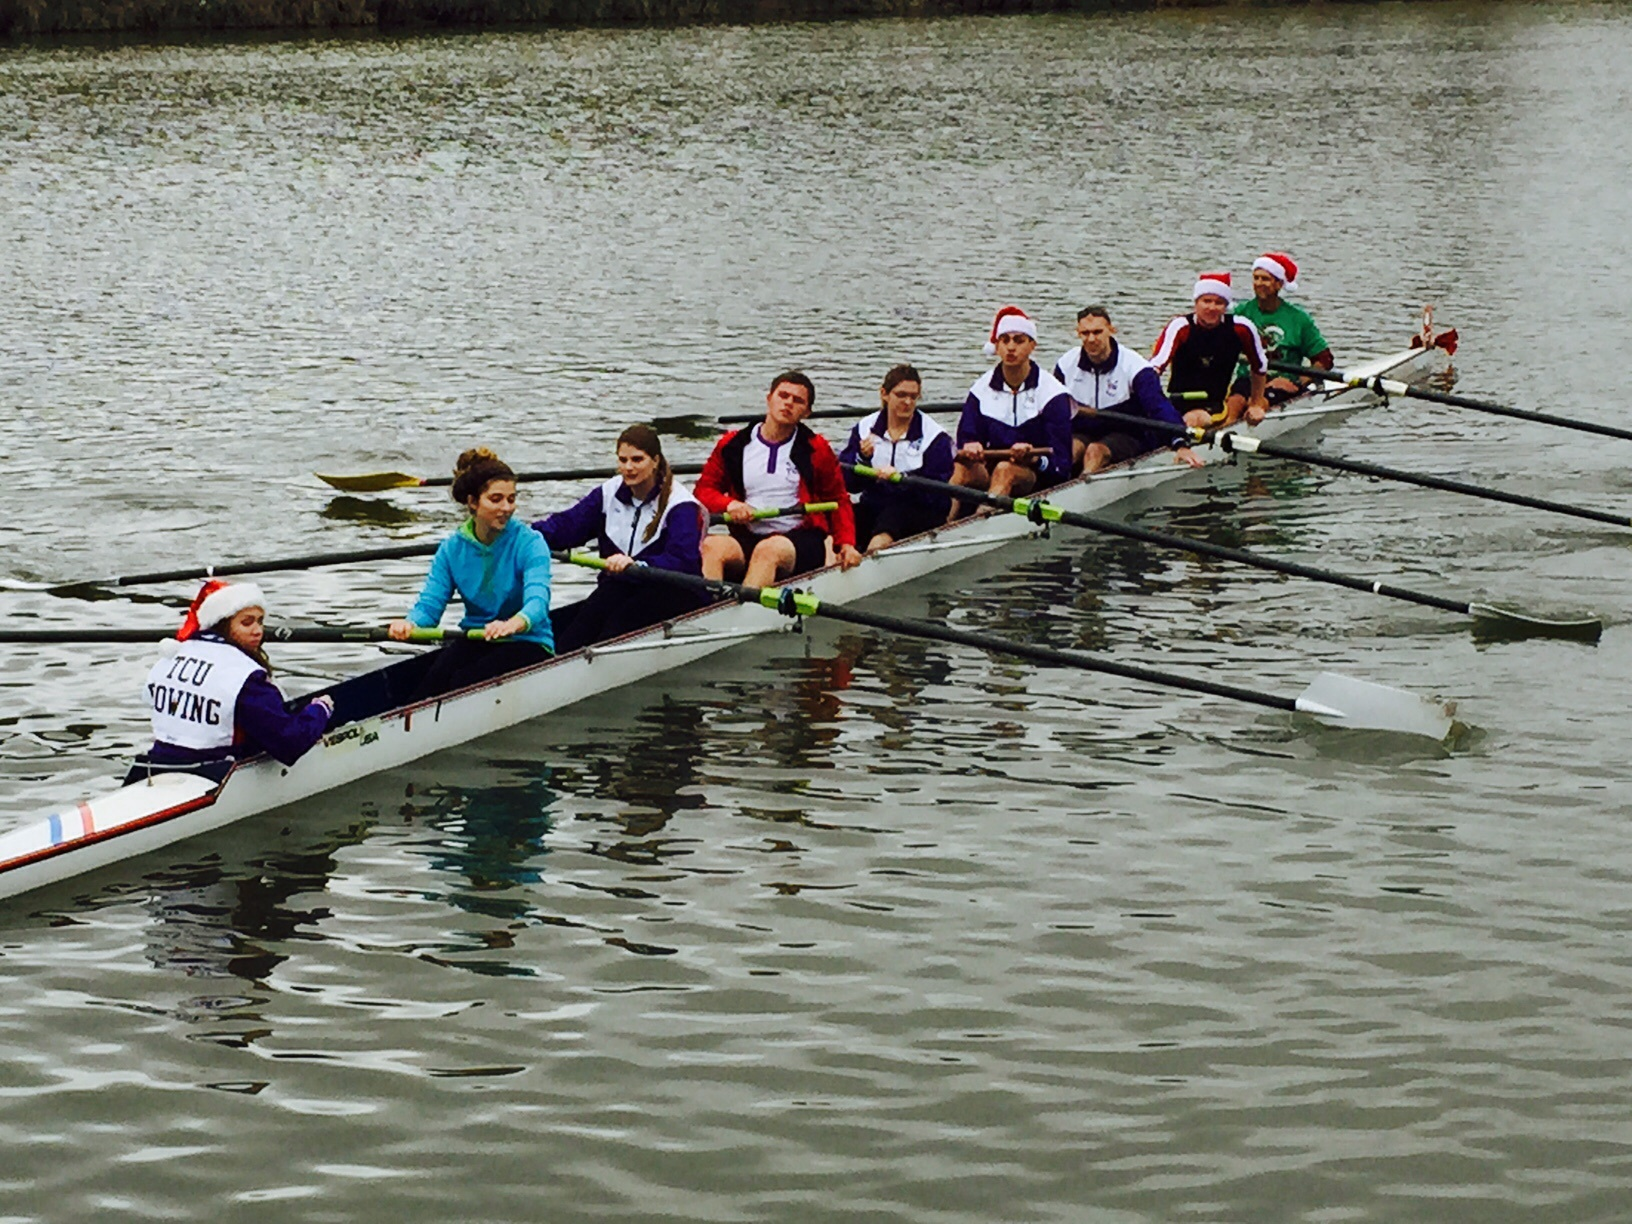 TCU 8+ Heads out to Race.